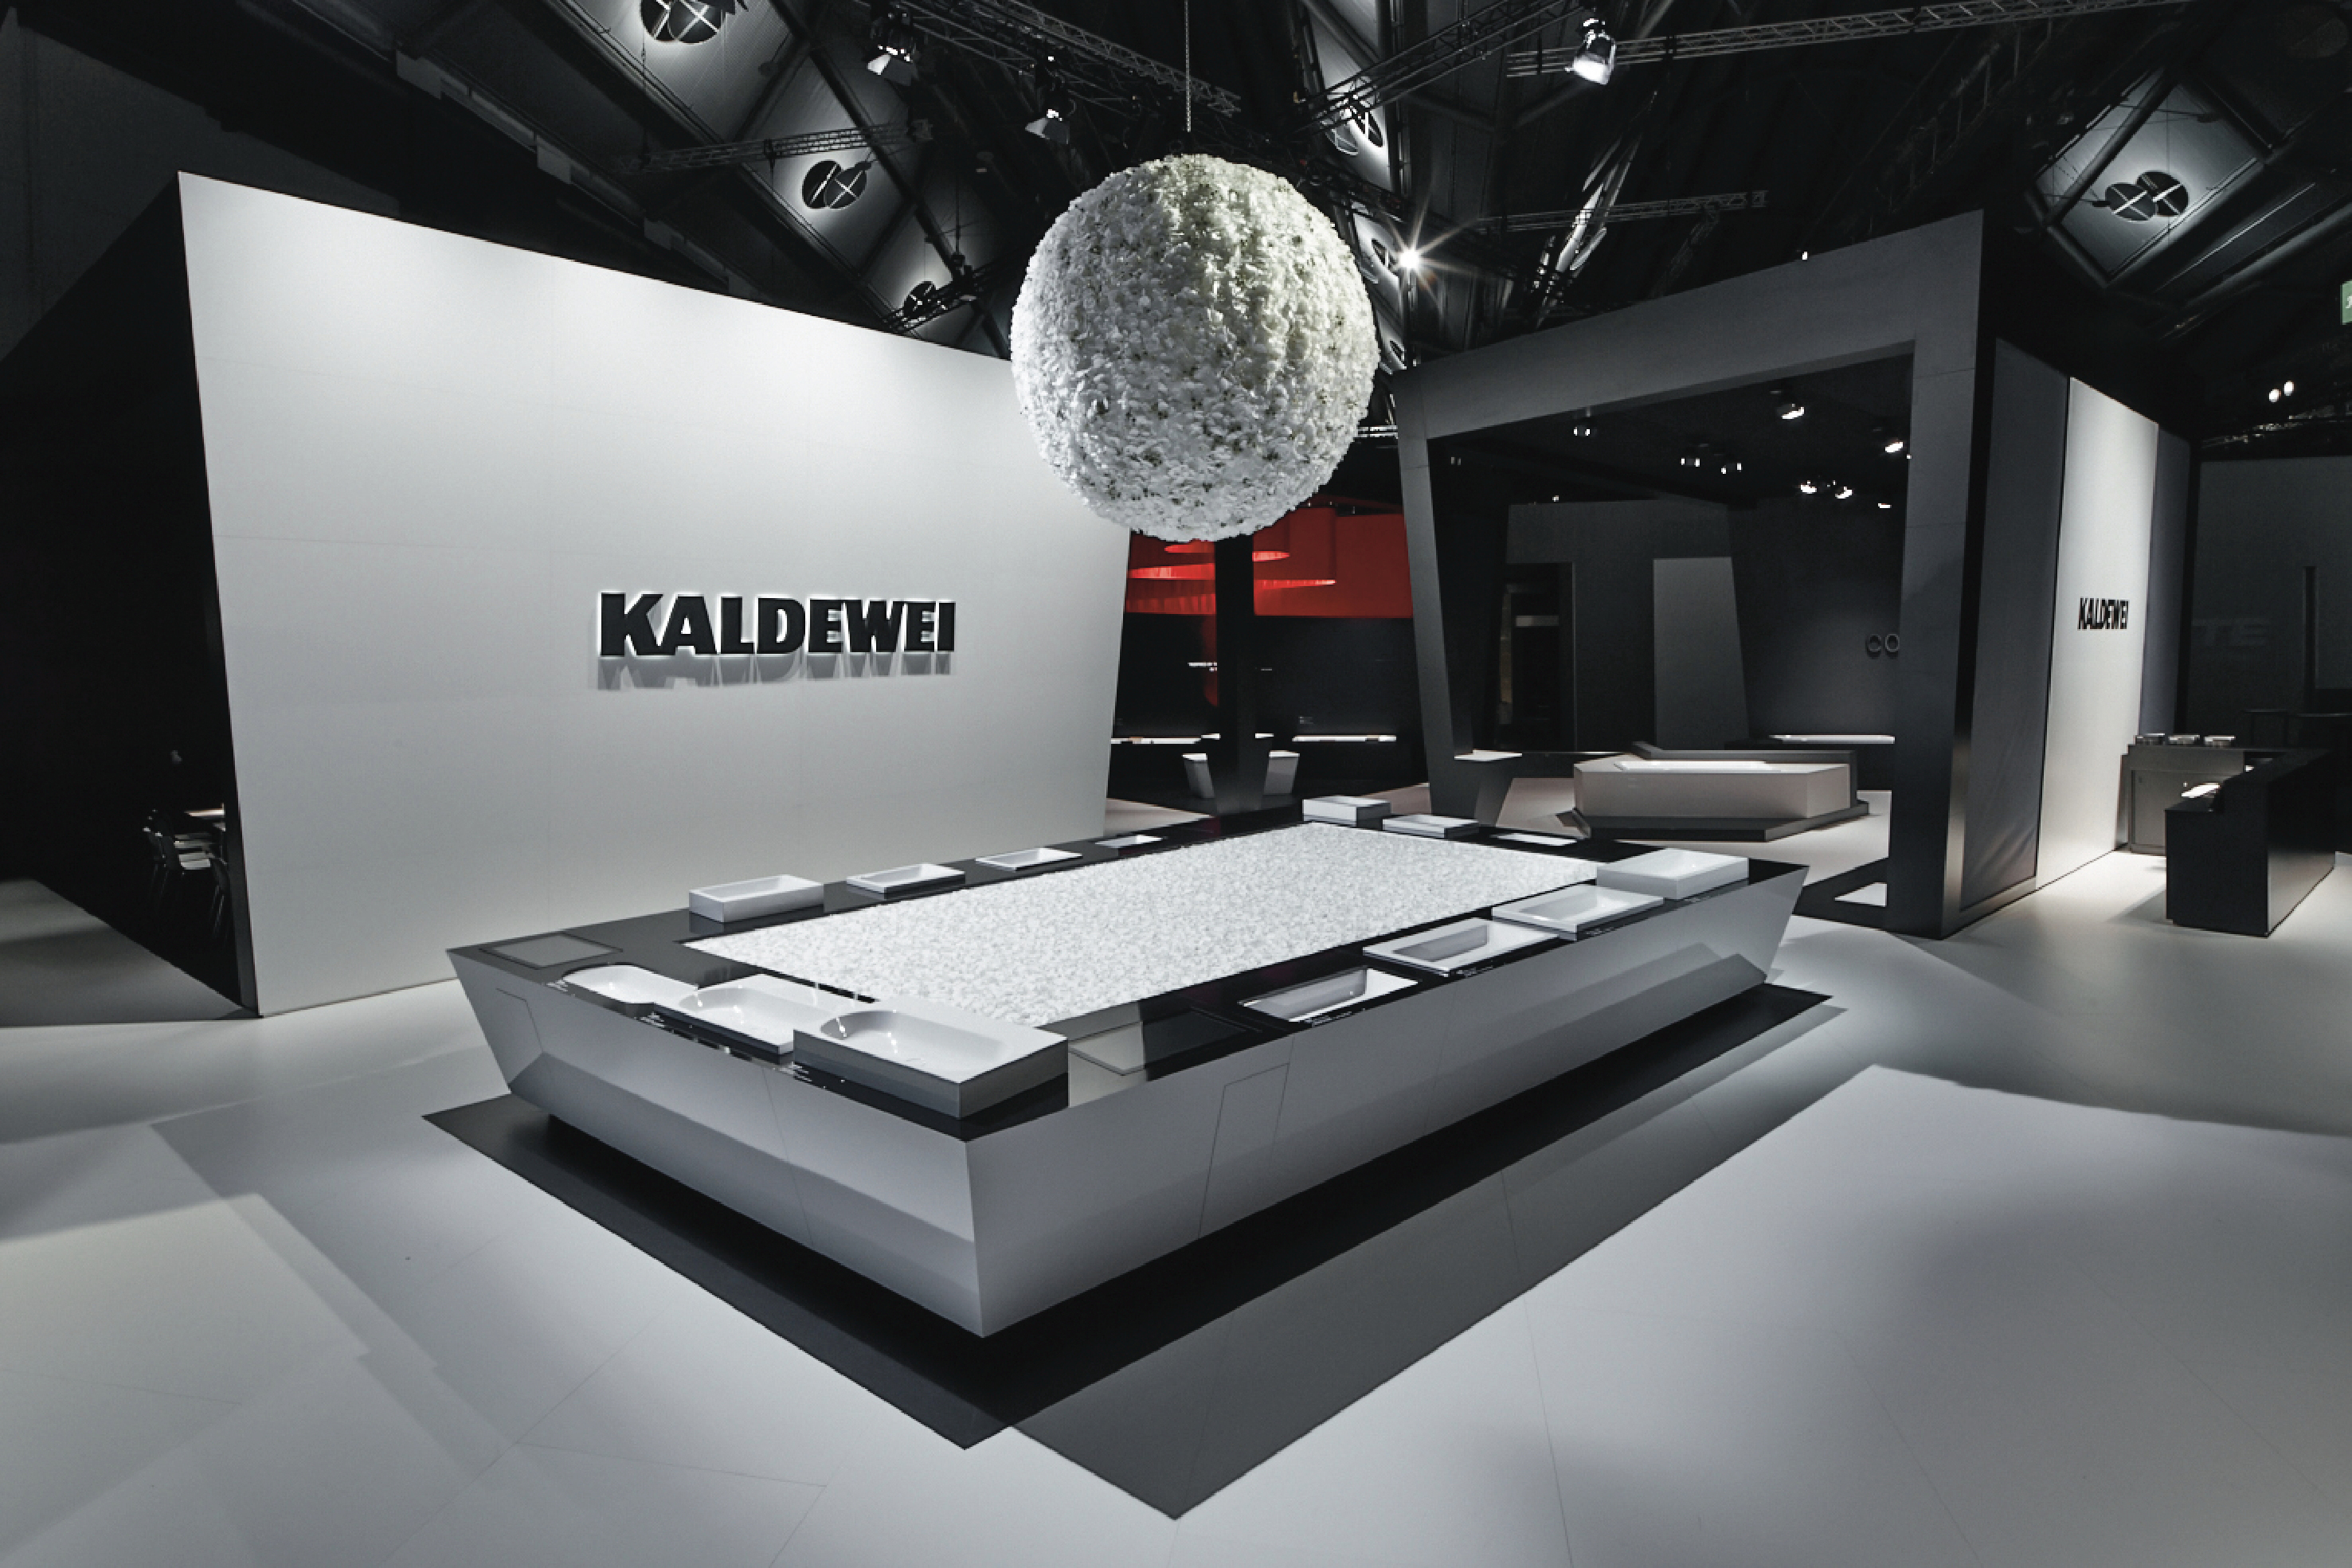 kaldewei auf der salone del mobile. Black Bedroom Furniture Sets. Home Design Ideas